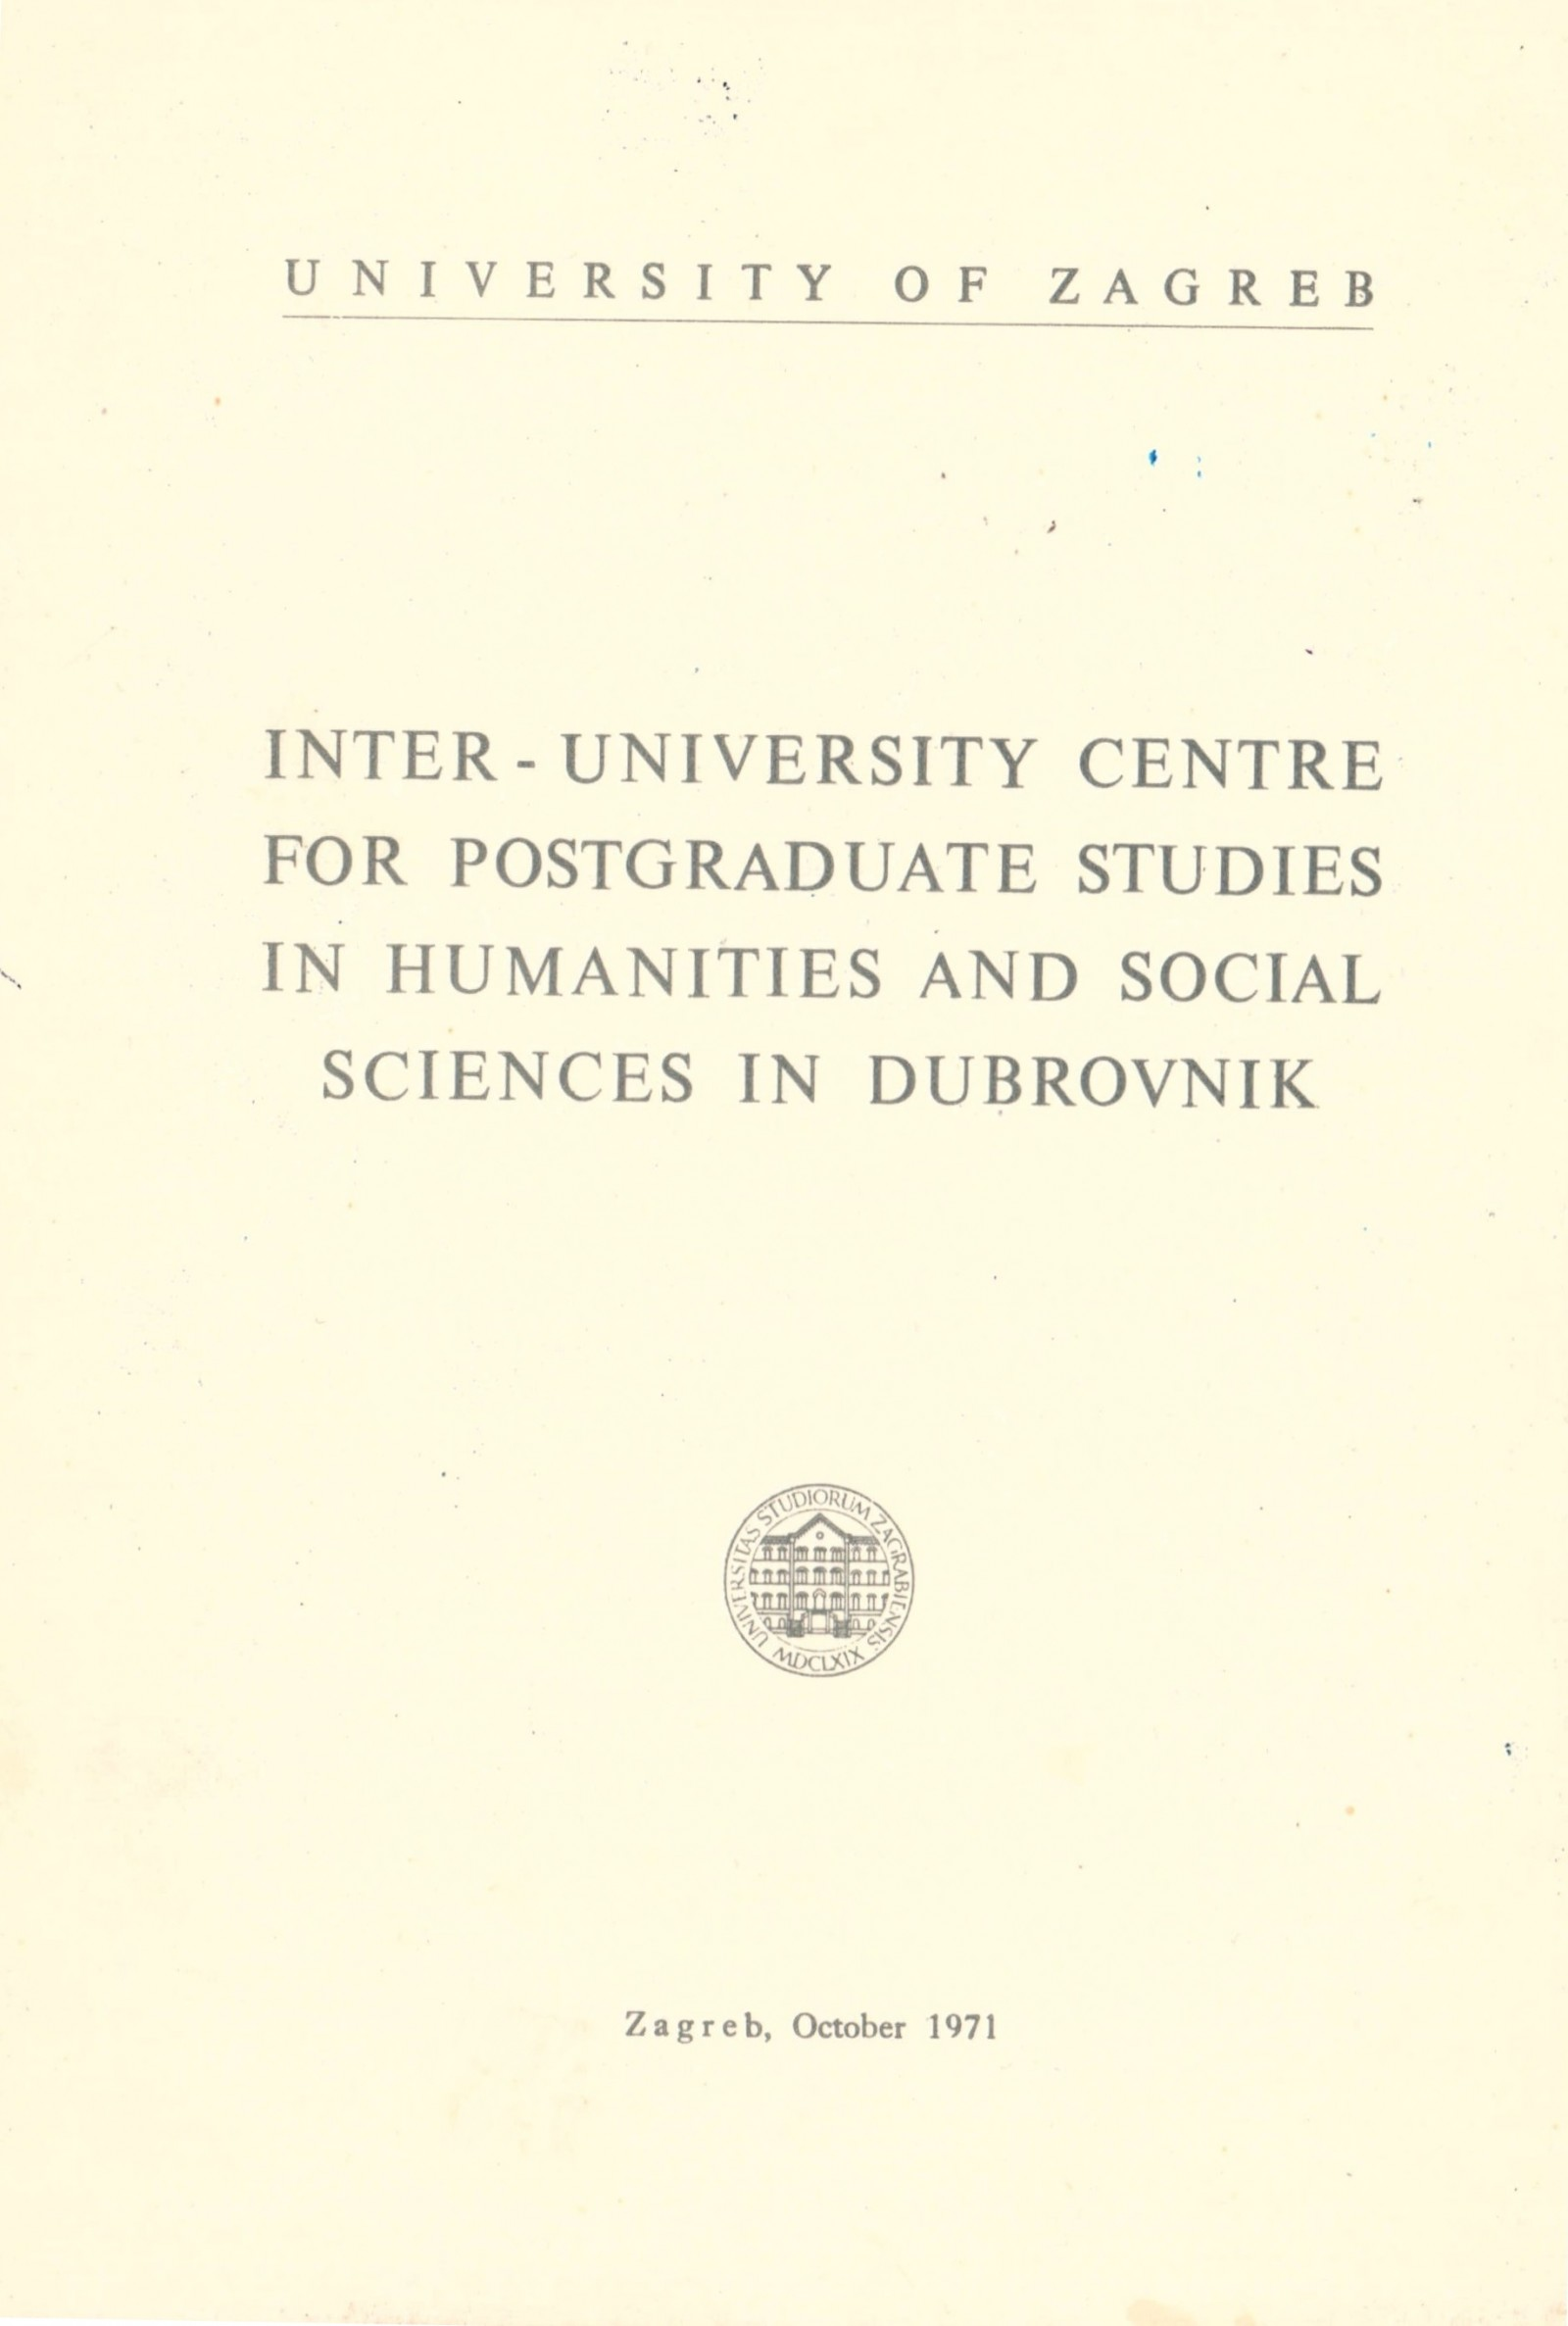 Inter-University Centre for Postgraduate Studies in Humanities and Social Sciences in Dubrovnik